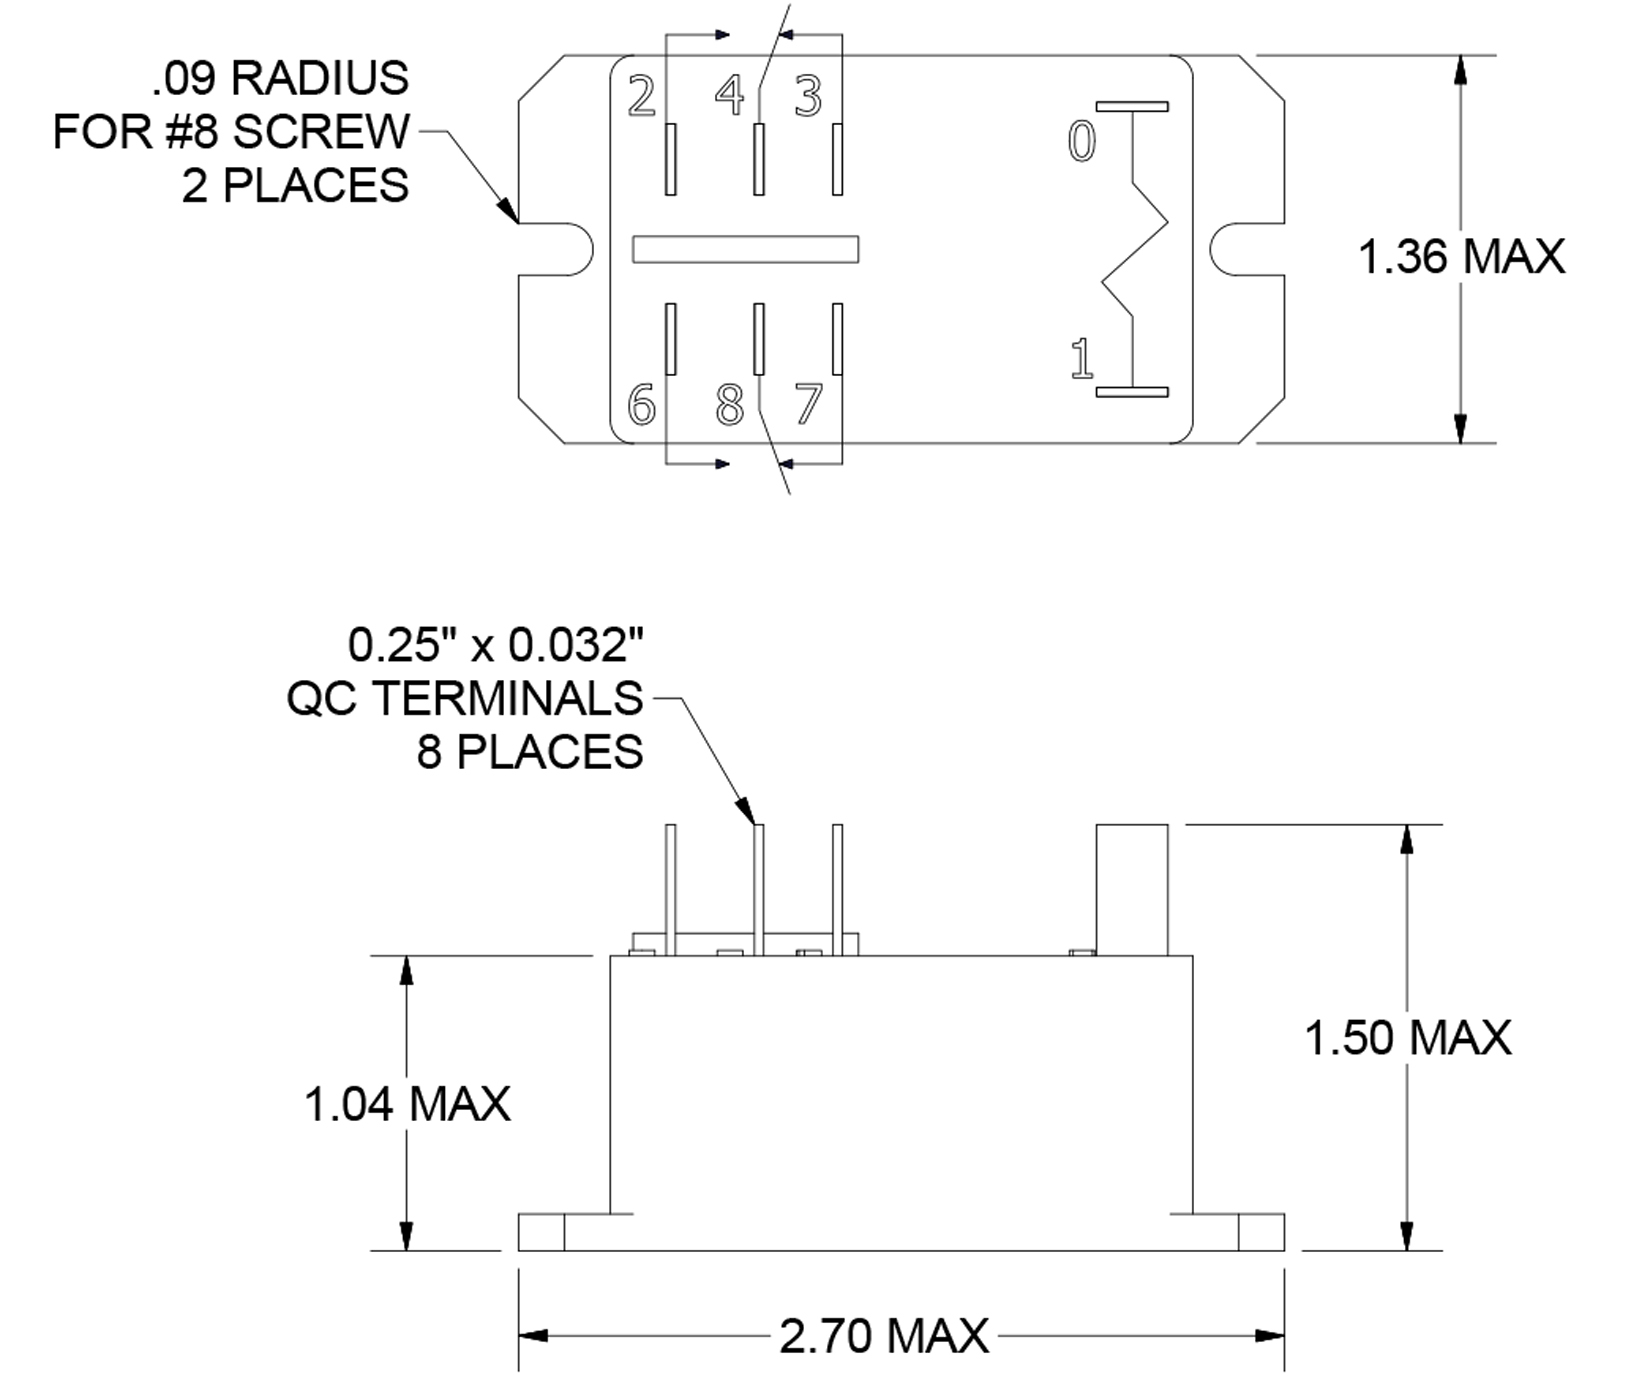 Spdt Relay Wiring Diagram Multiple Circuit And Hub Images Gallery